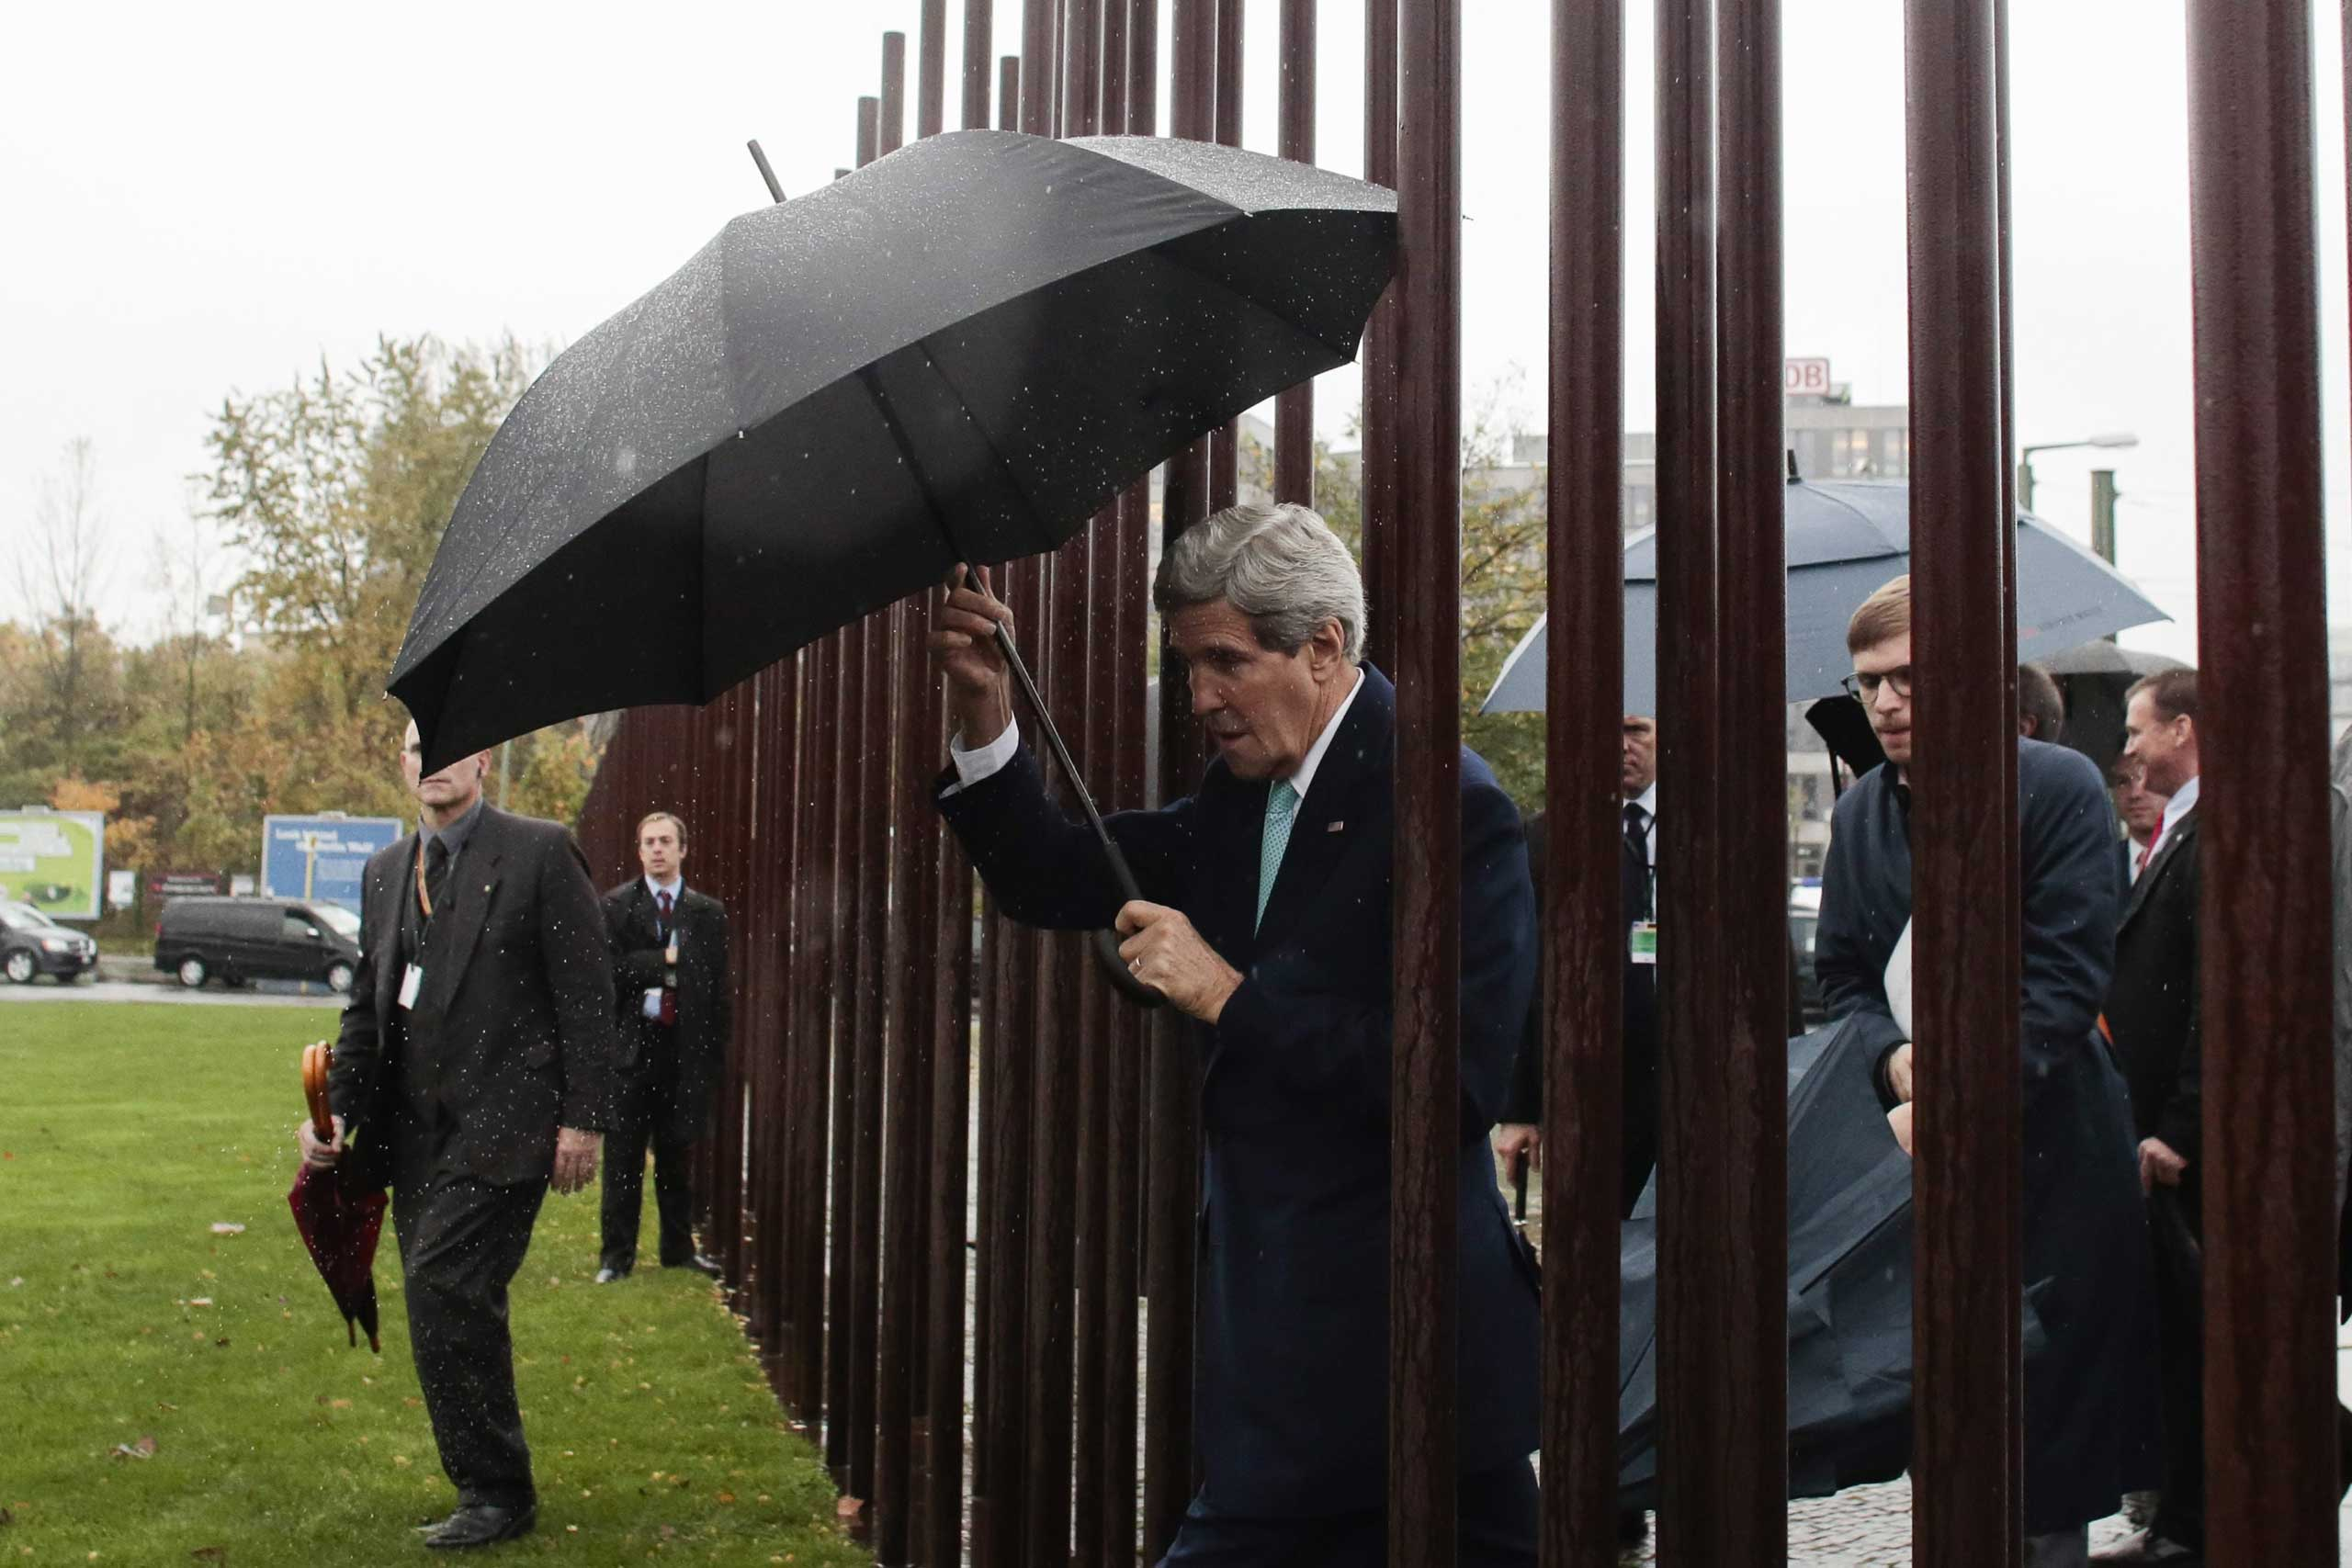 OCt. 22, 2014. United States Secretary of State John Kerry (C) walks with an umbrella as he visits the Berlin Wall memorial site prior to a news conference with German Foreign Minister Frank-Walter Steinmeier at the Wall Documentation Center in Berlin, Germany.